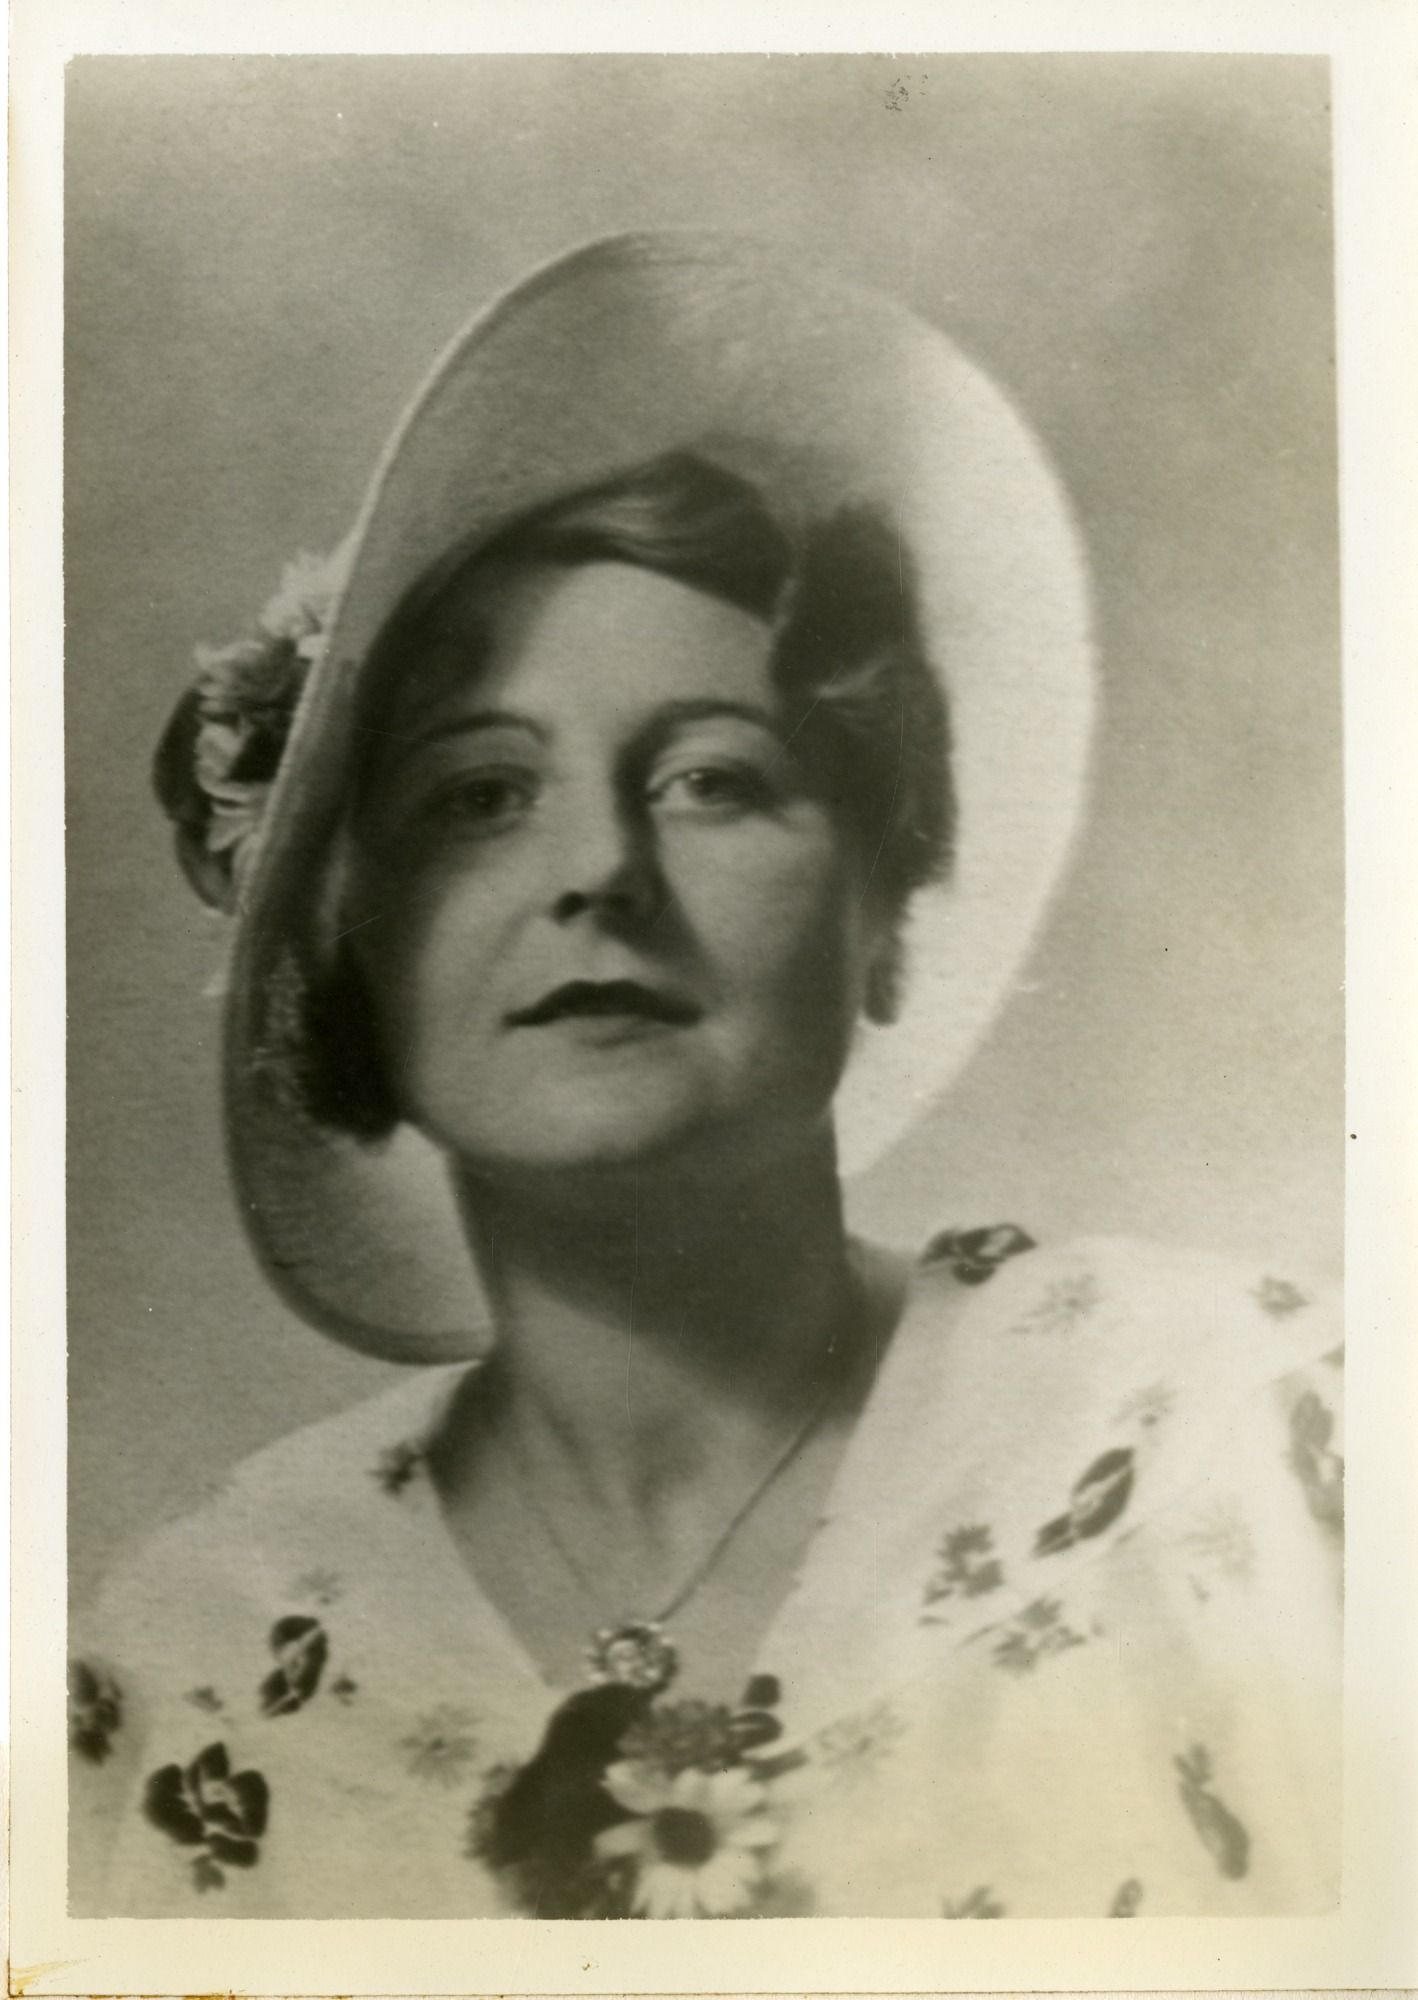 Editha Karl-Kroupa, 1934, Smithsonian Institution Archives, SIA Acc. 90-105 [SIA2008-4975].